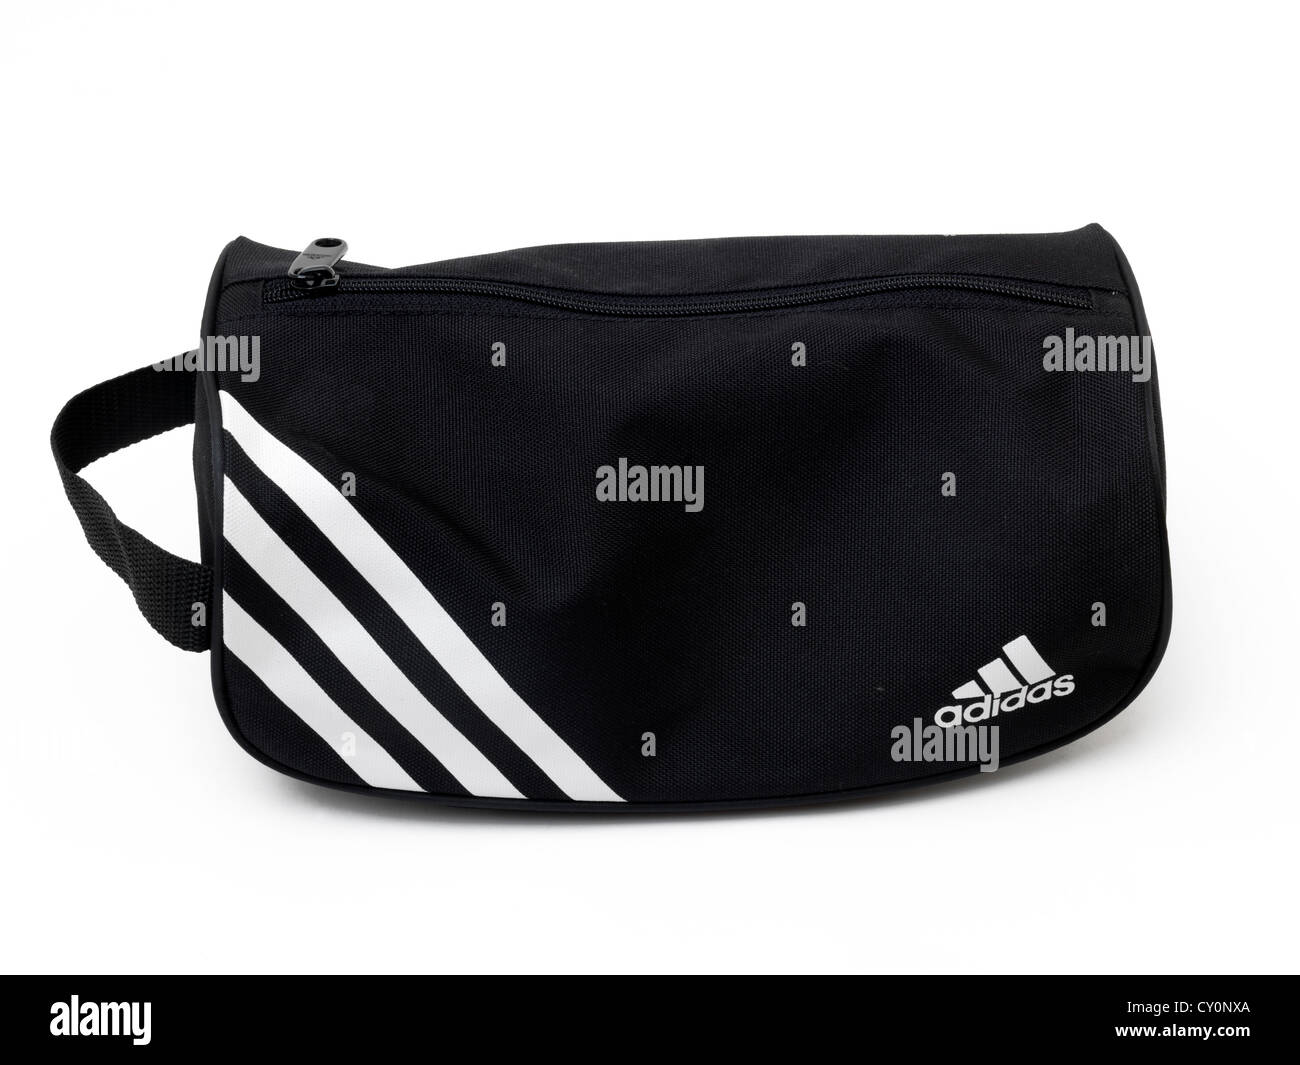 Adidas Toiletry Bag - Stock Image